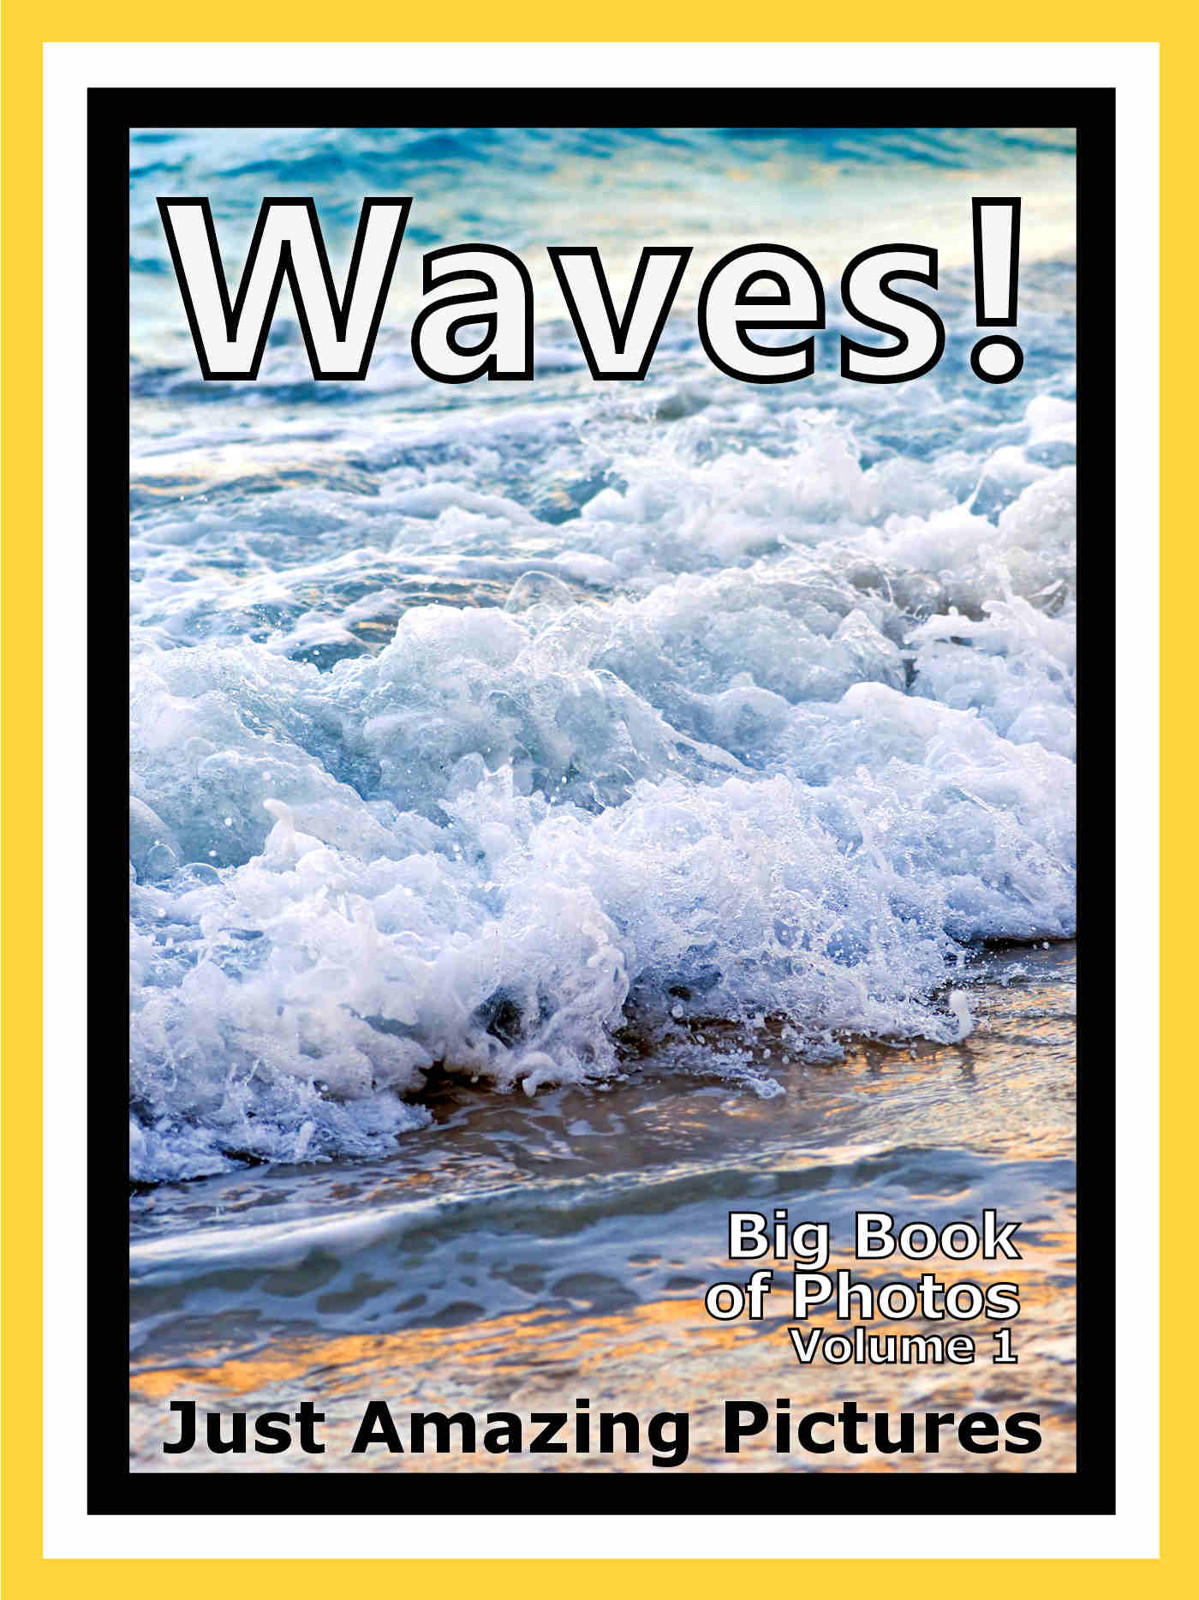 Just Wave Photos! Big Book of Photographs & Pictures of Ocean Sea Water Waves, Vol. 1